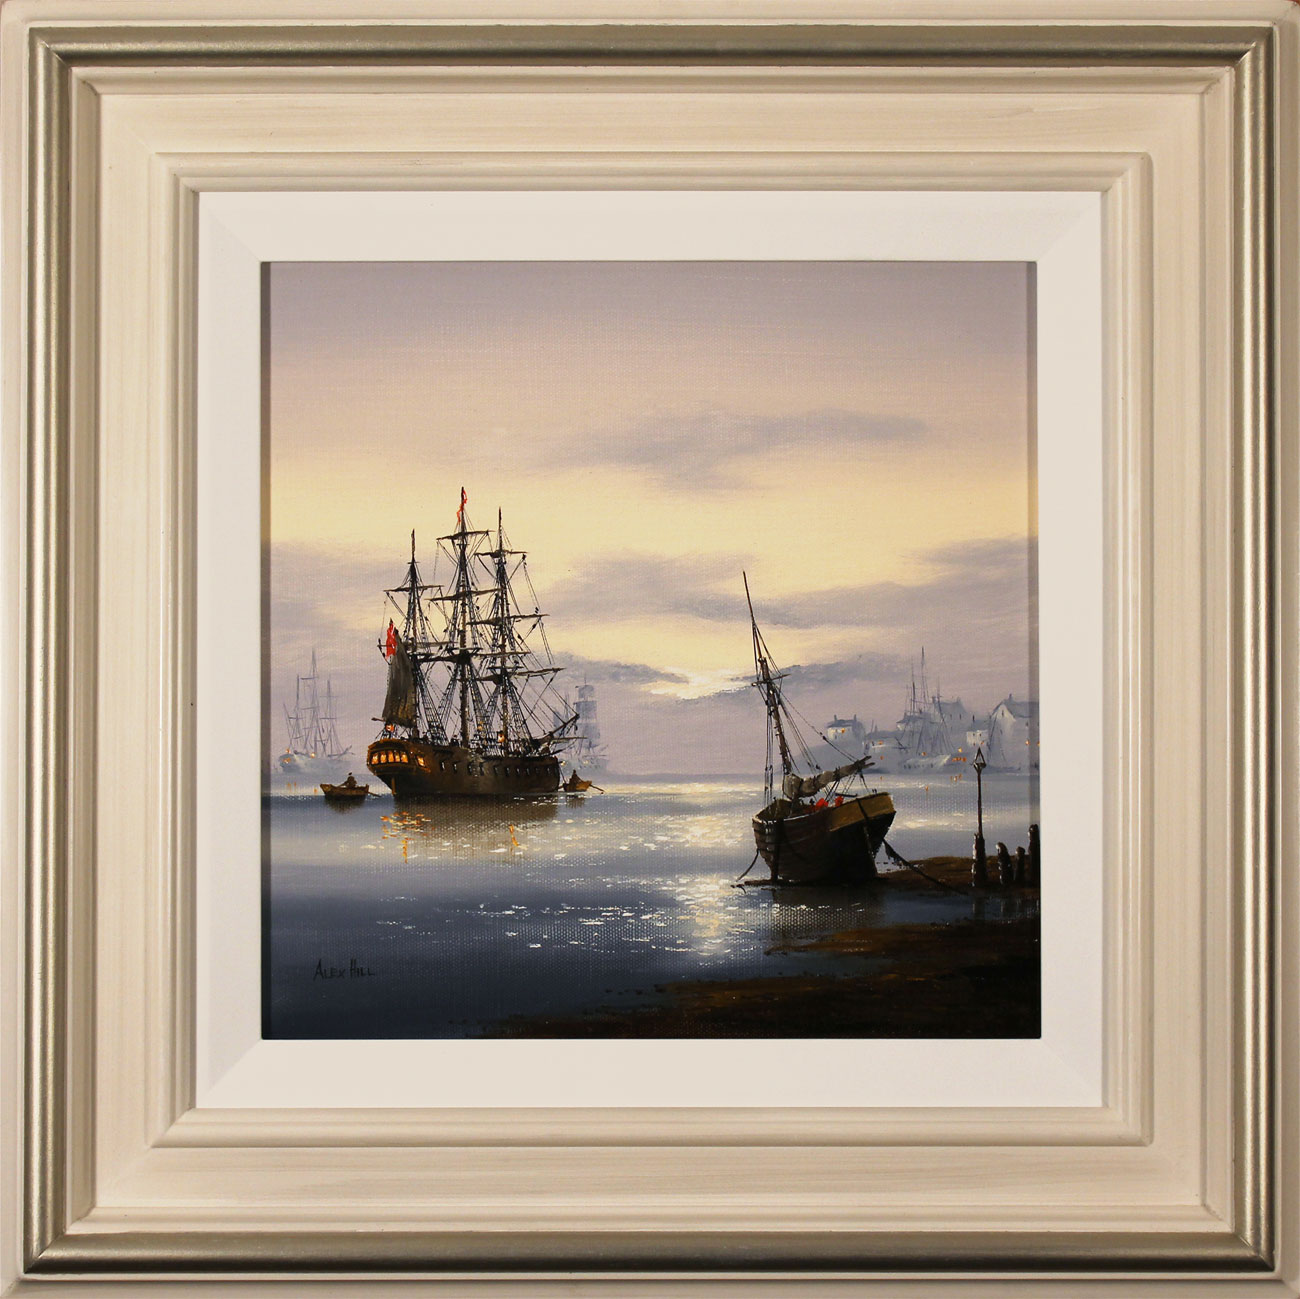 Alex Hill, Original oil painting on canvas, Sunrise Mooring, click to enlarge